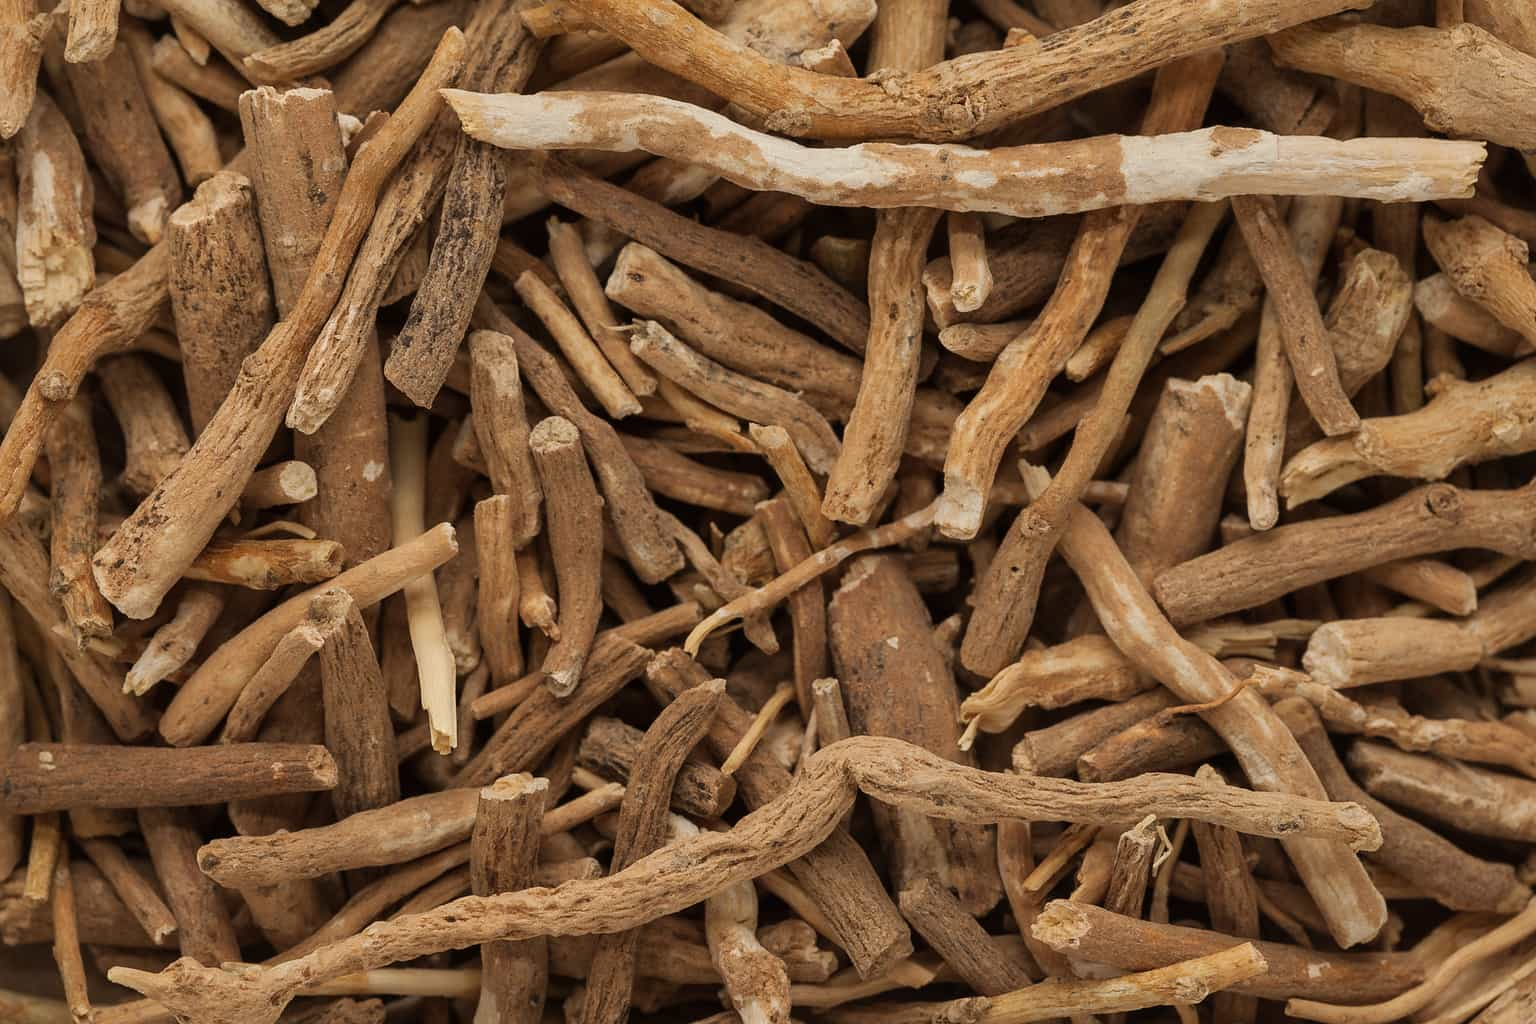 Ashwagandha raises testosterone and downregulates estrogen receptor